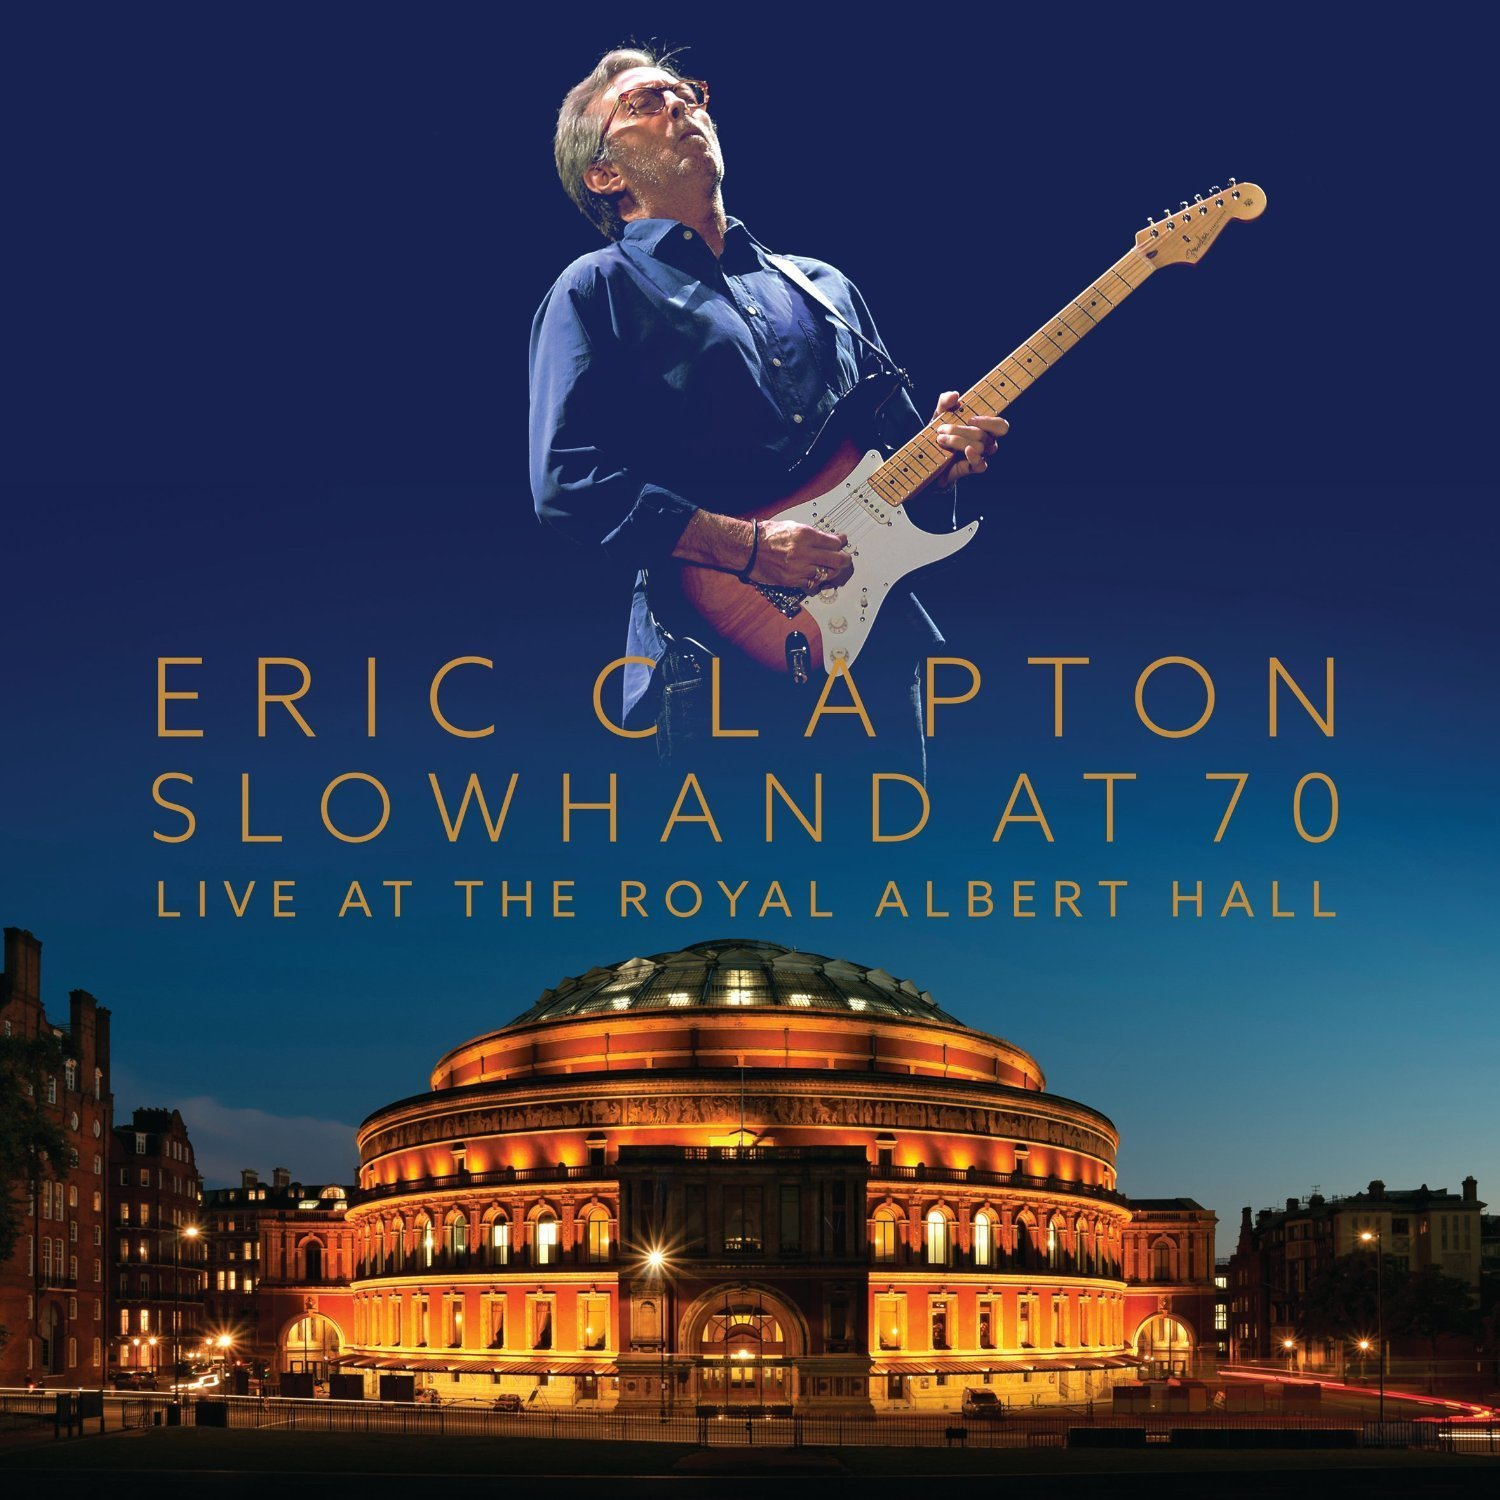 eric clapton slowhand at 70 live royal albert hall 180gm vinyl 3 lp dvd for sale online and instor. Black Bedroom Furniture Sets. Home Design Ideas